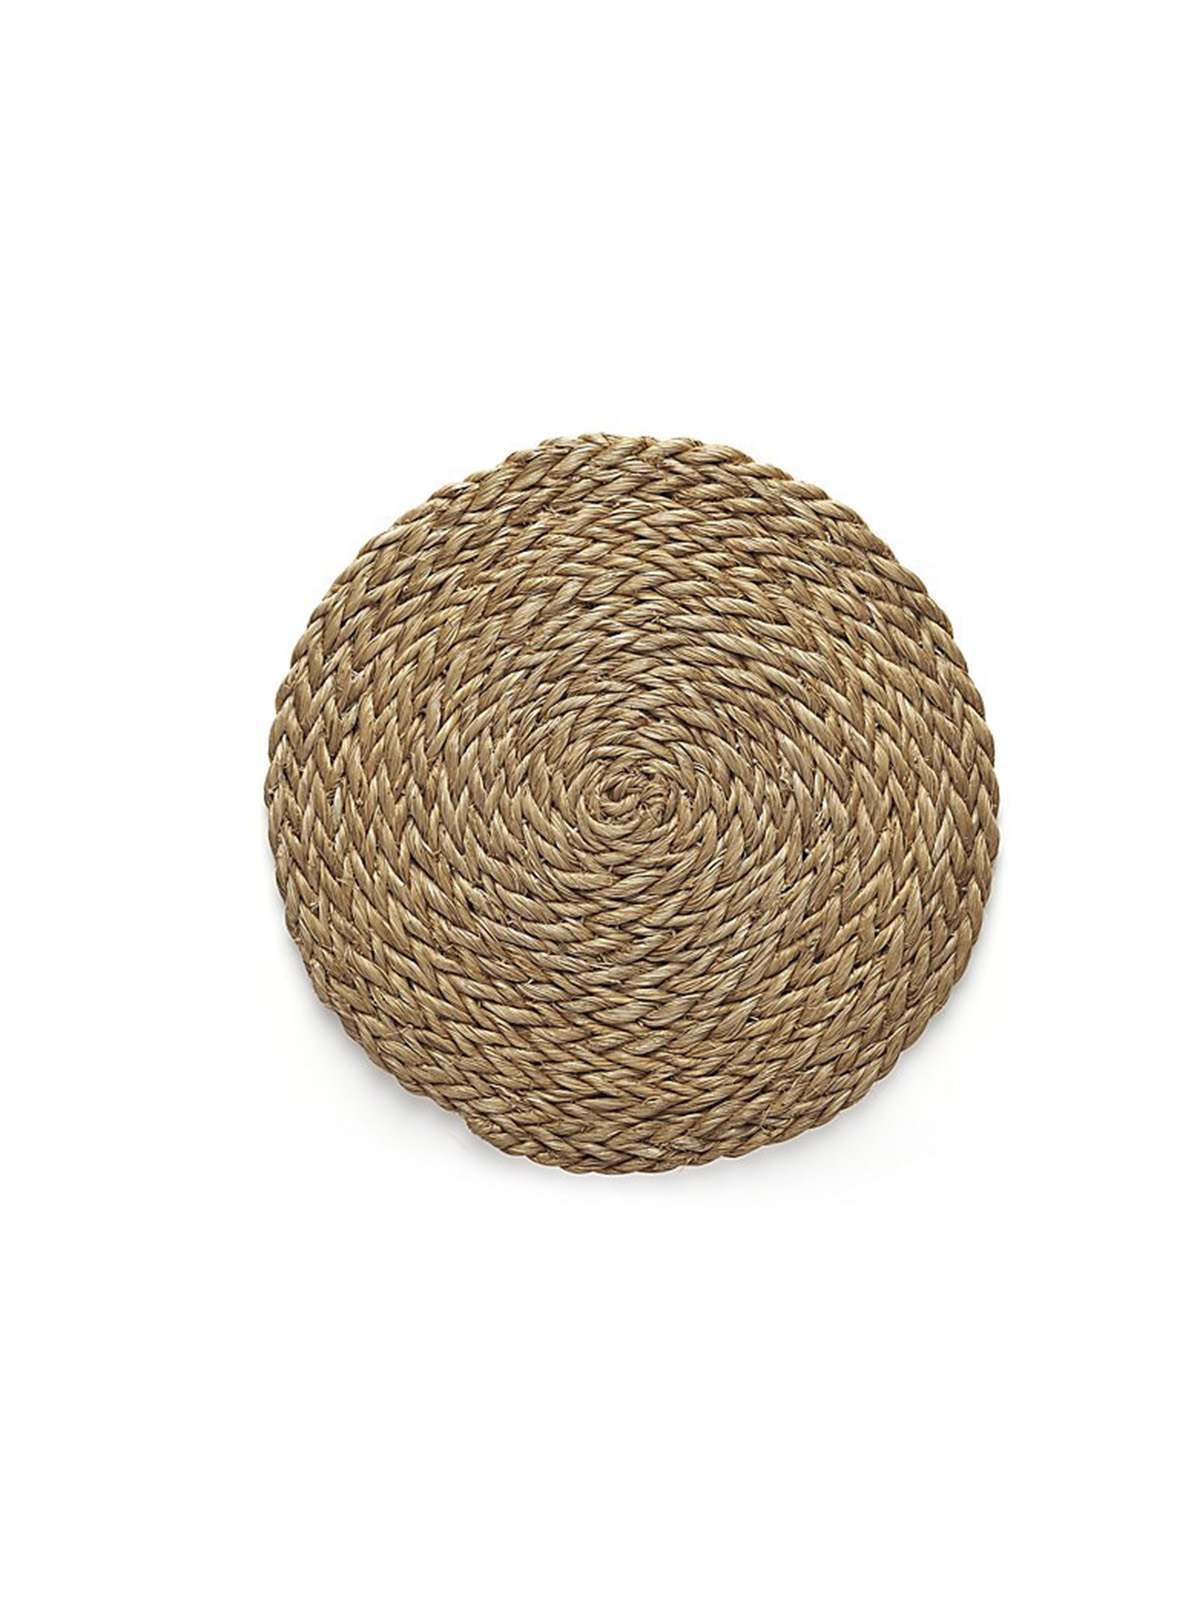 Woven Charger from Draper James collection